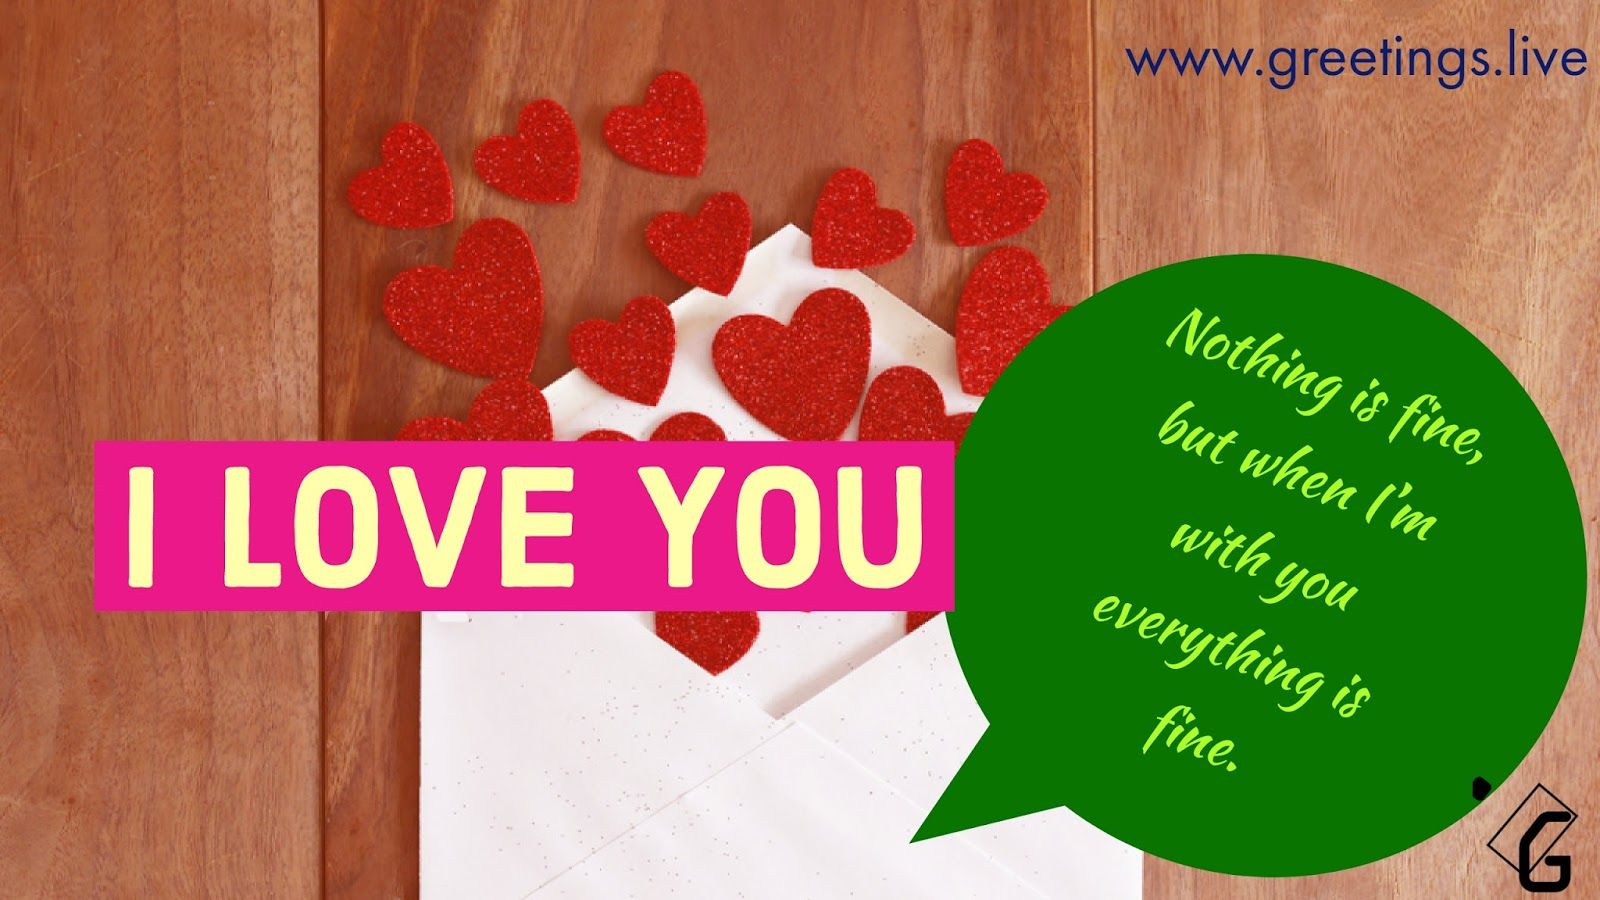 I love you love letters greetings hd love proposal greetings i love you love letters greetings hd m4hsunfo